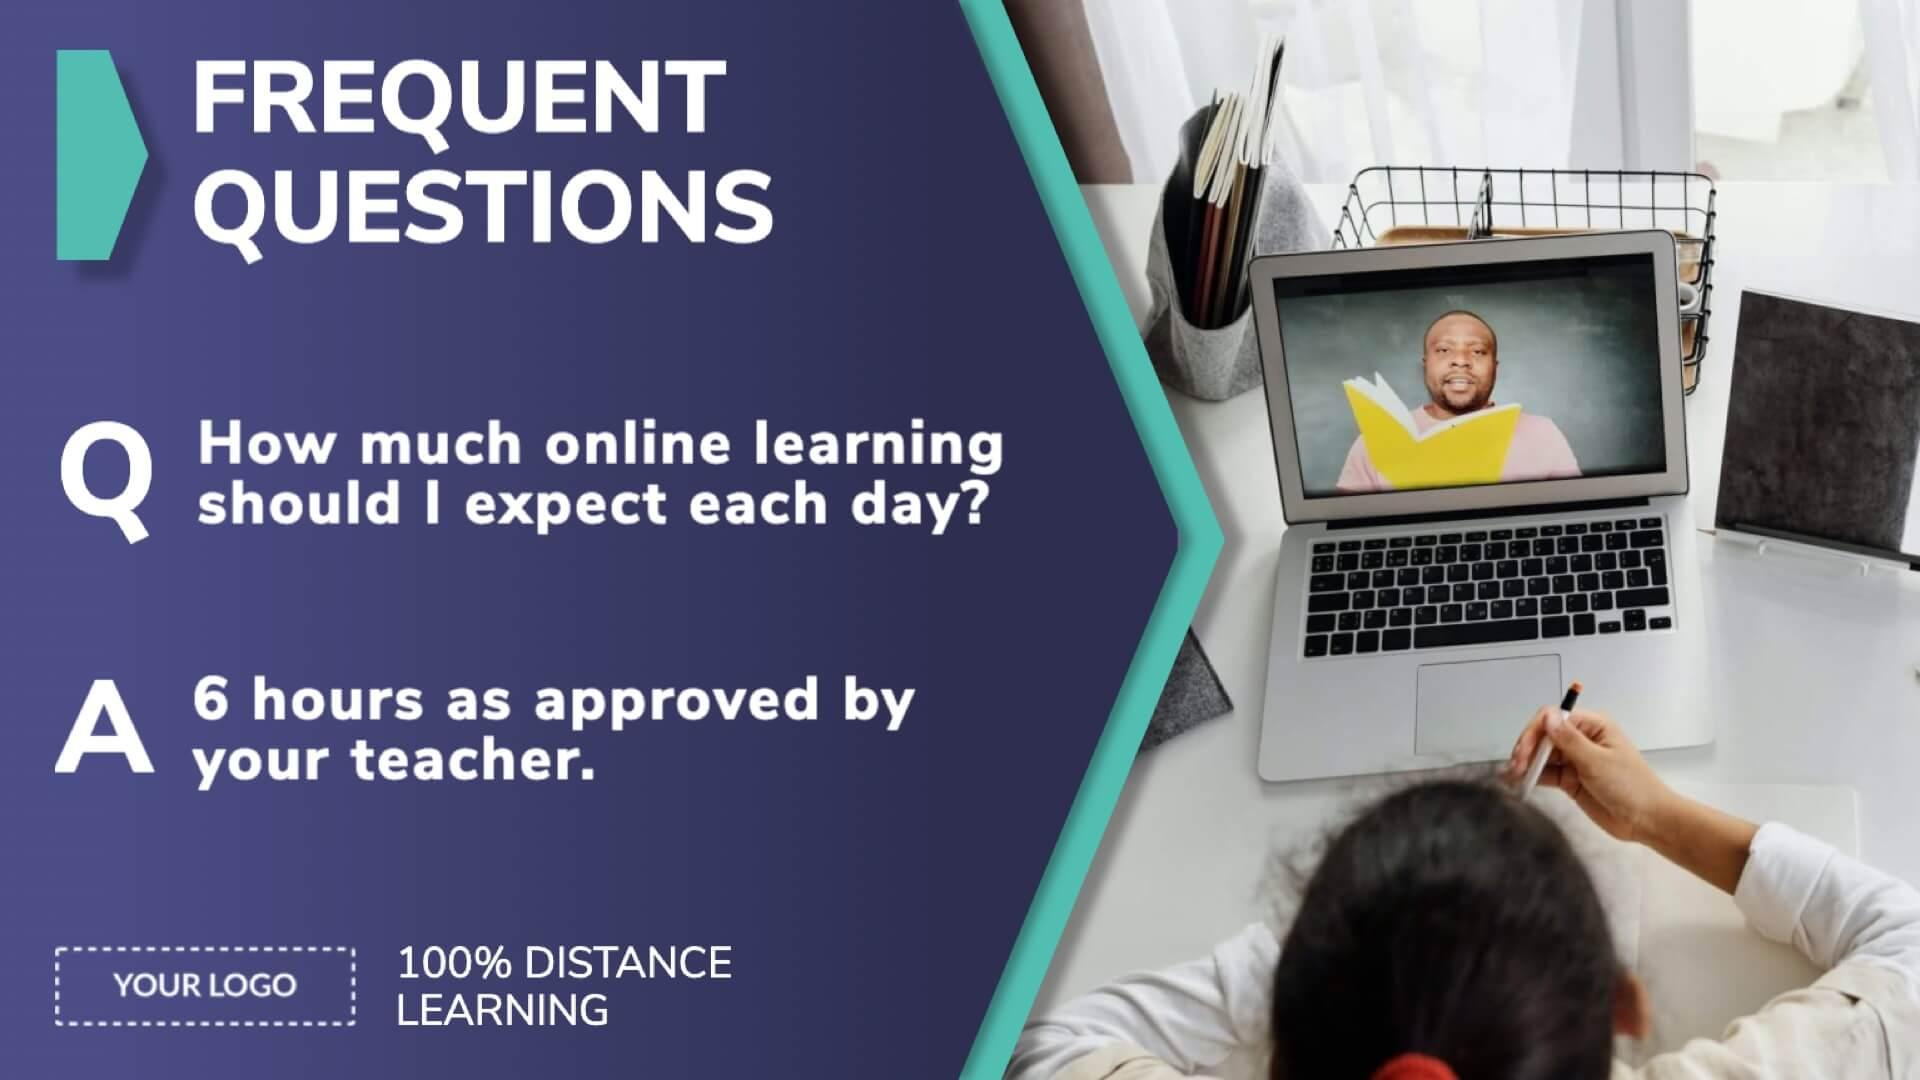 Distance Learning Frequent Questions Digital Signage Template